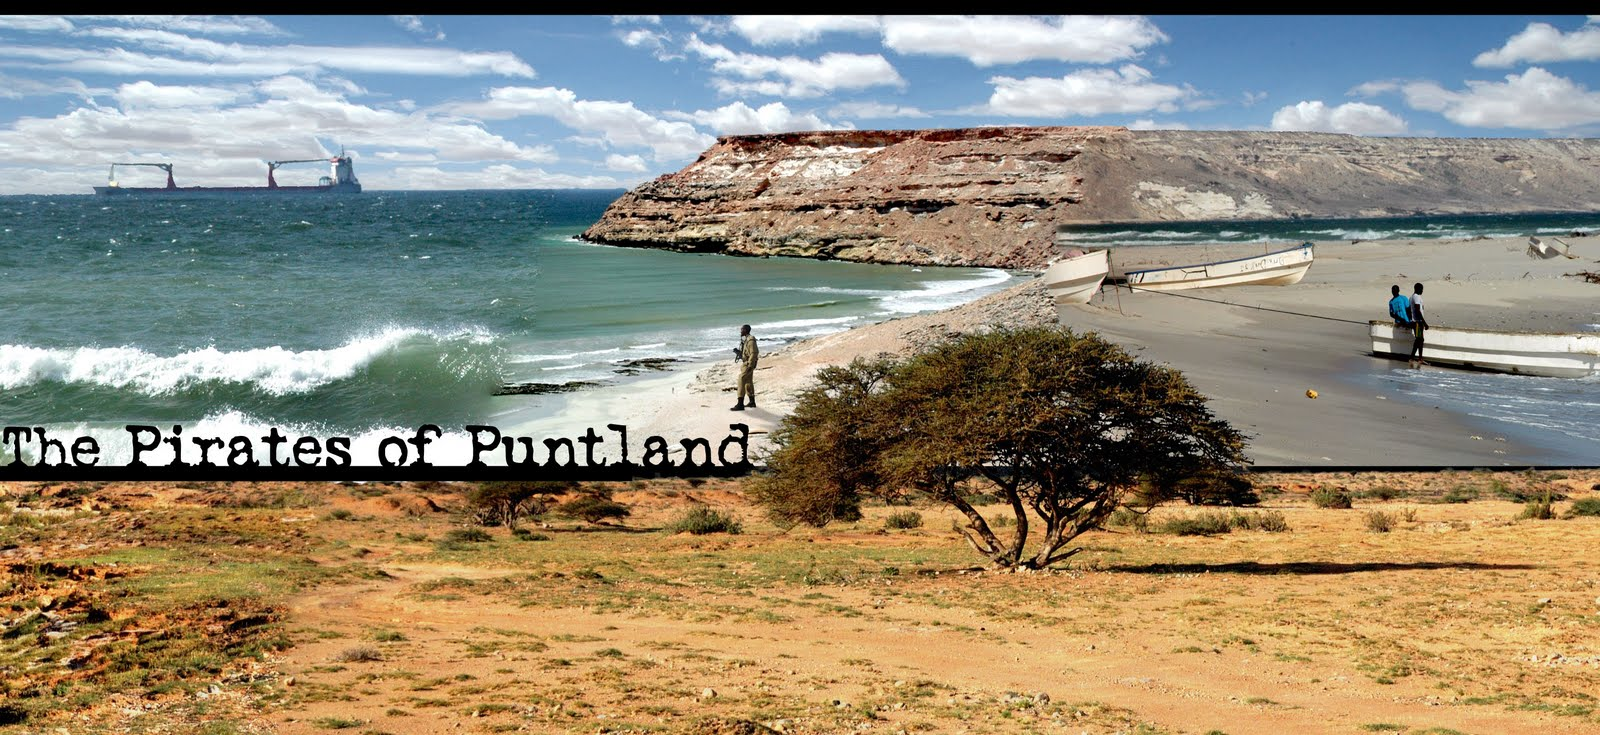 The Pirates of Puntland